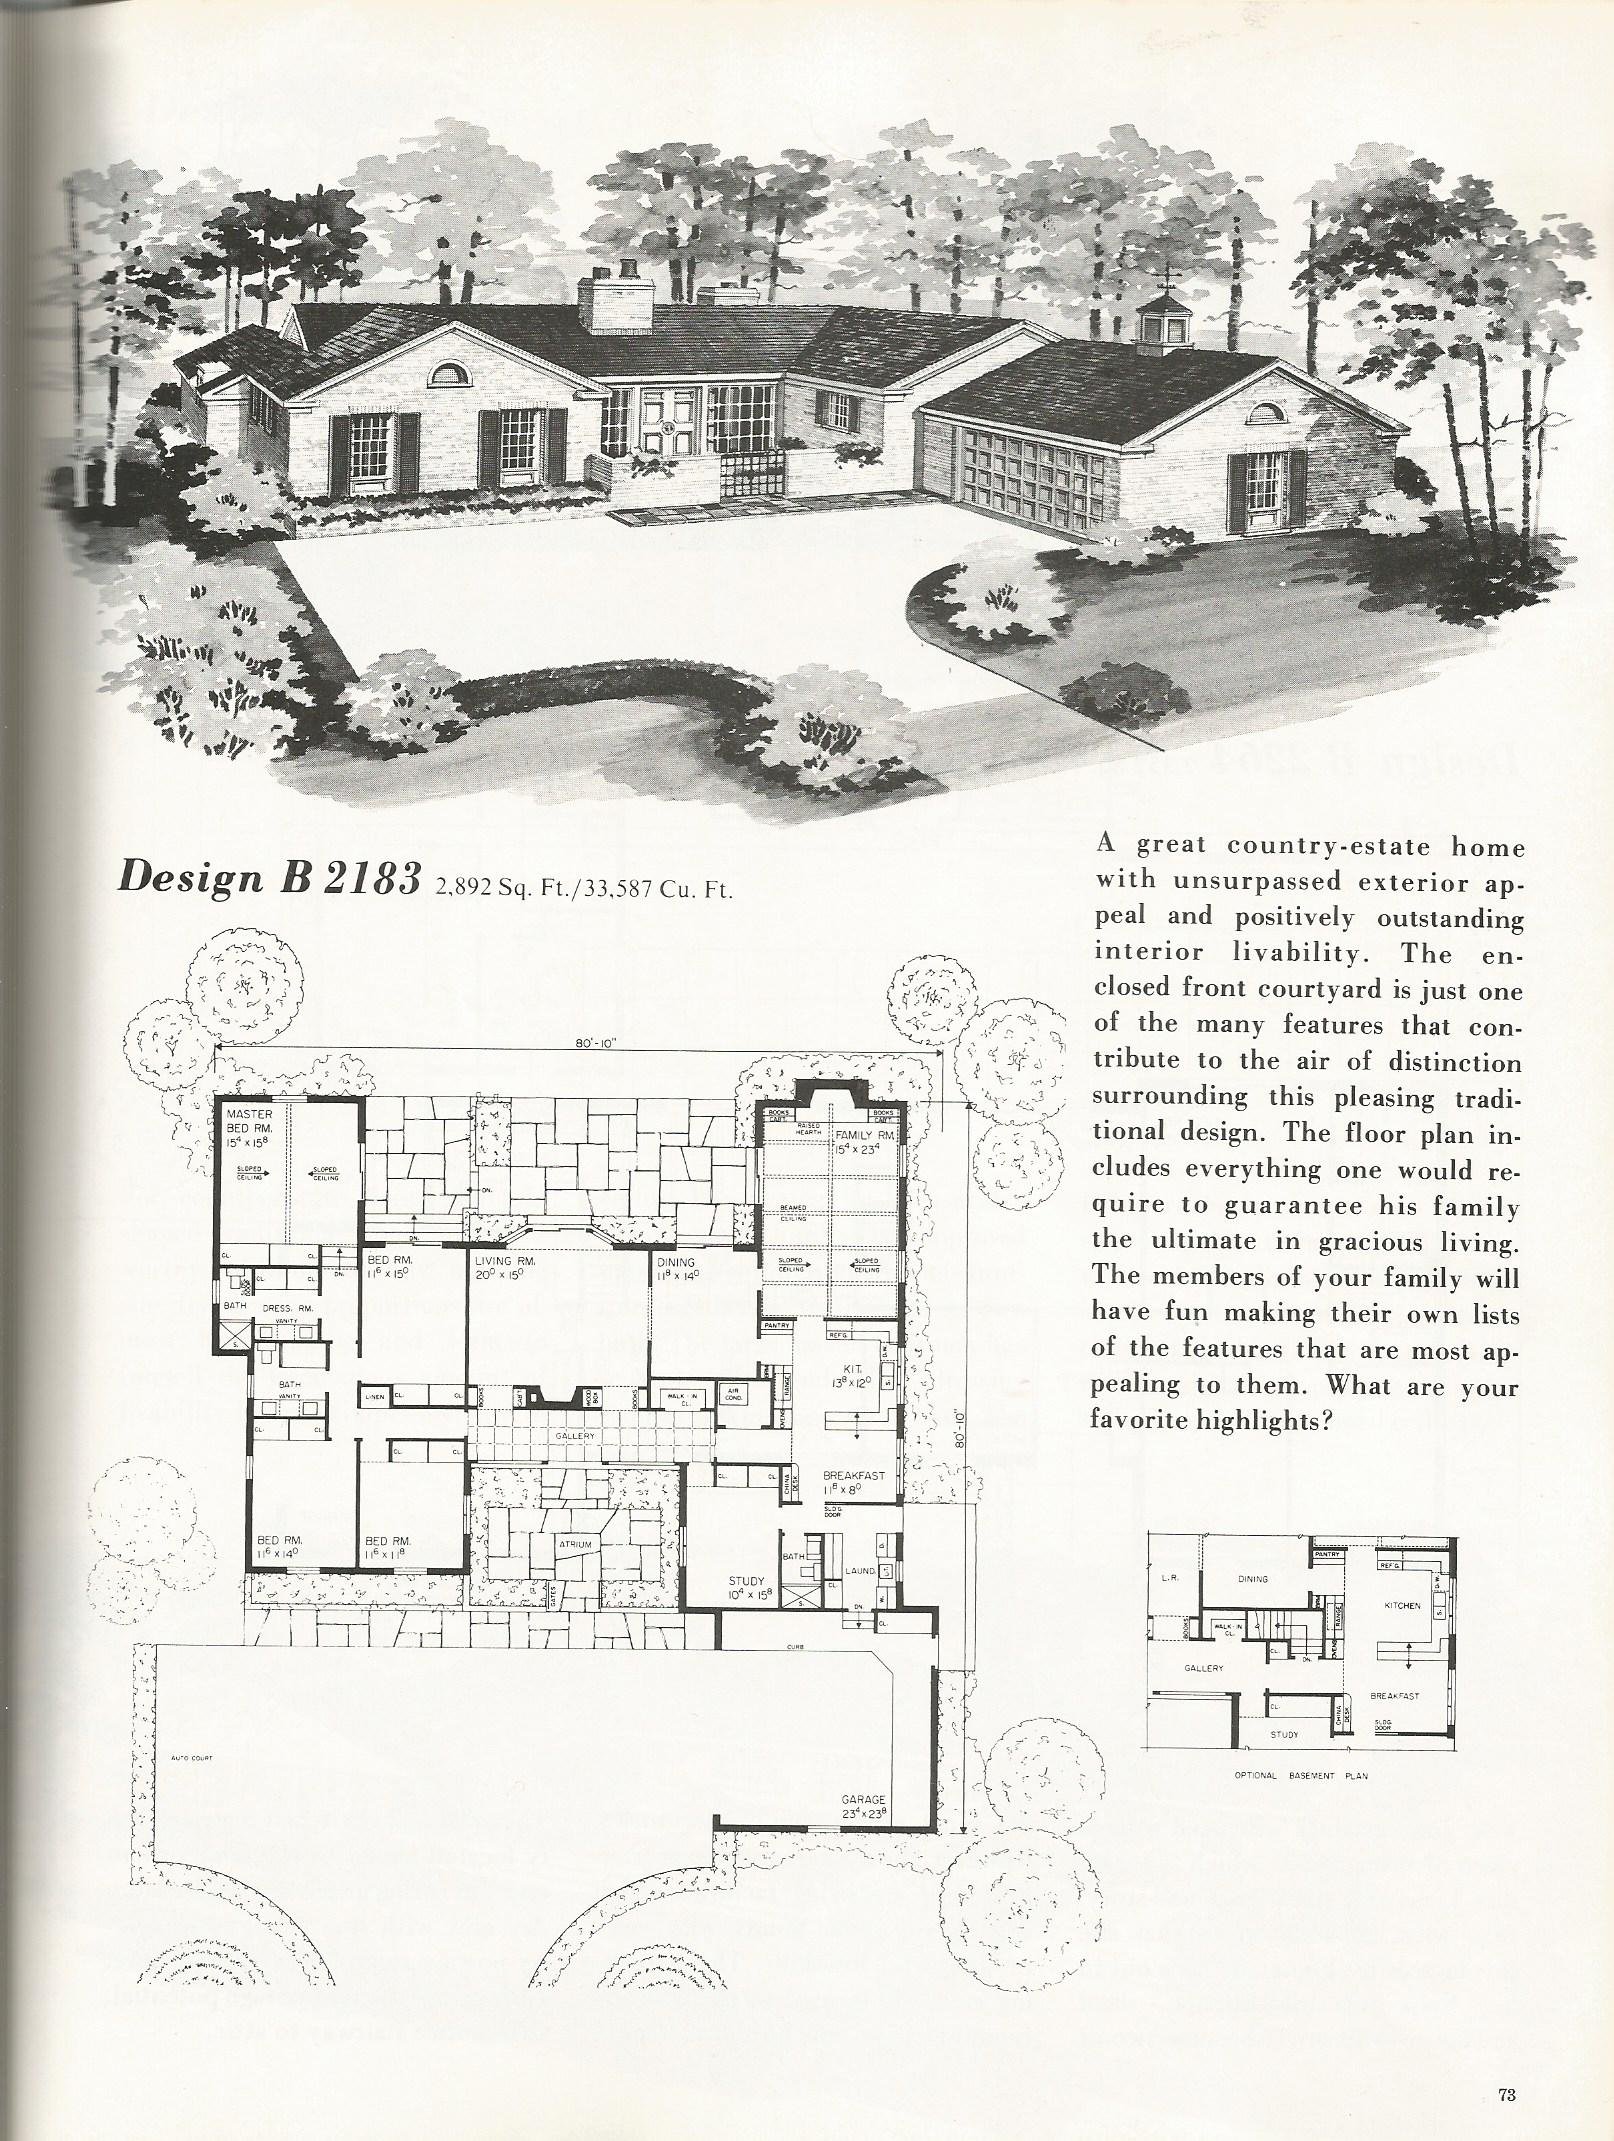 Vintage house plans 2183 antique alter ego for Vintage home floor plans